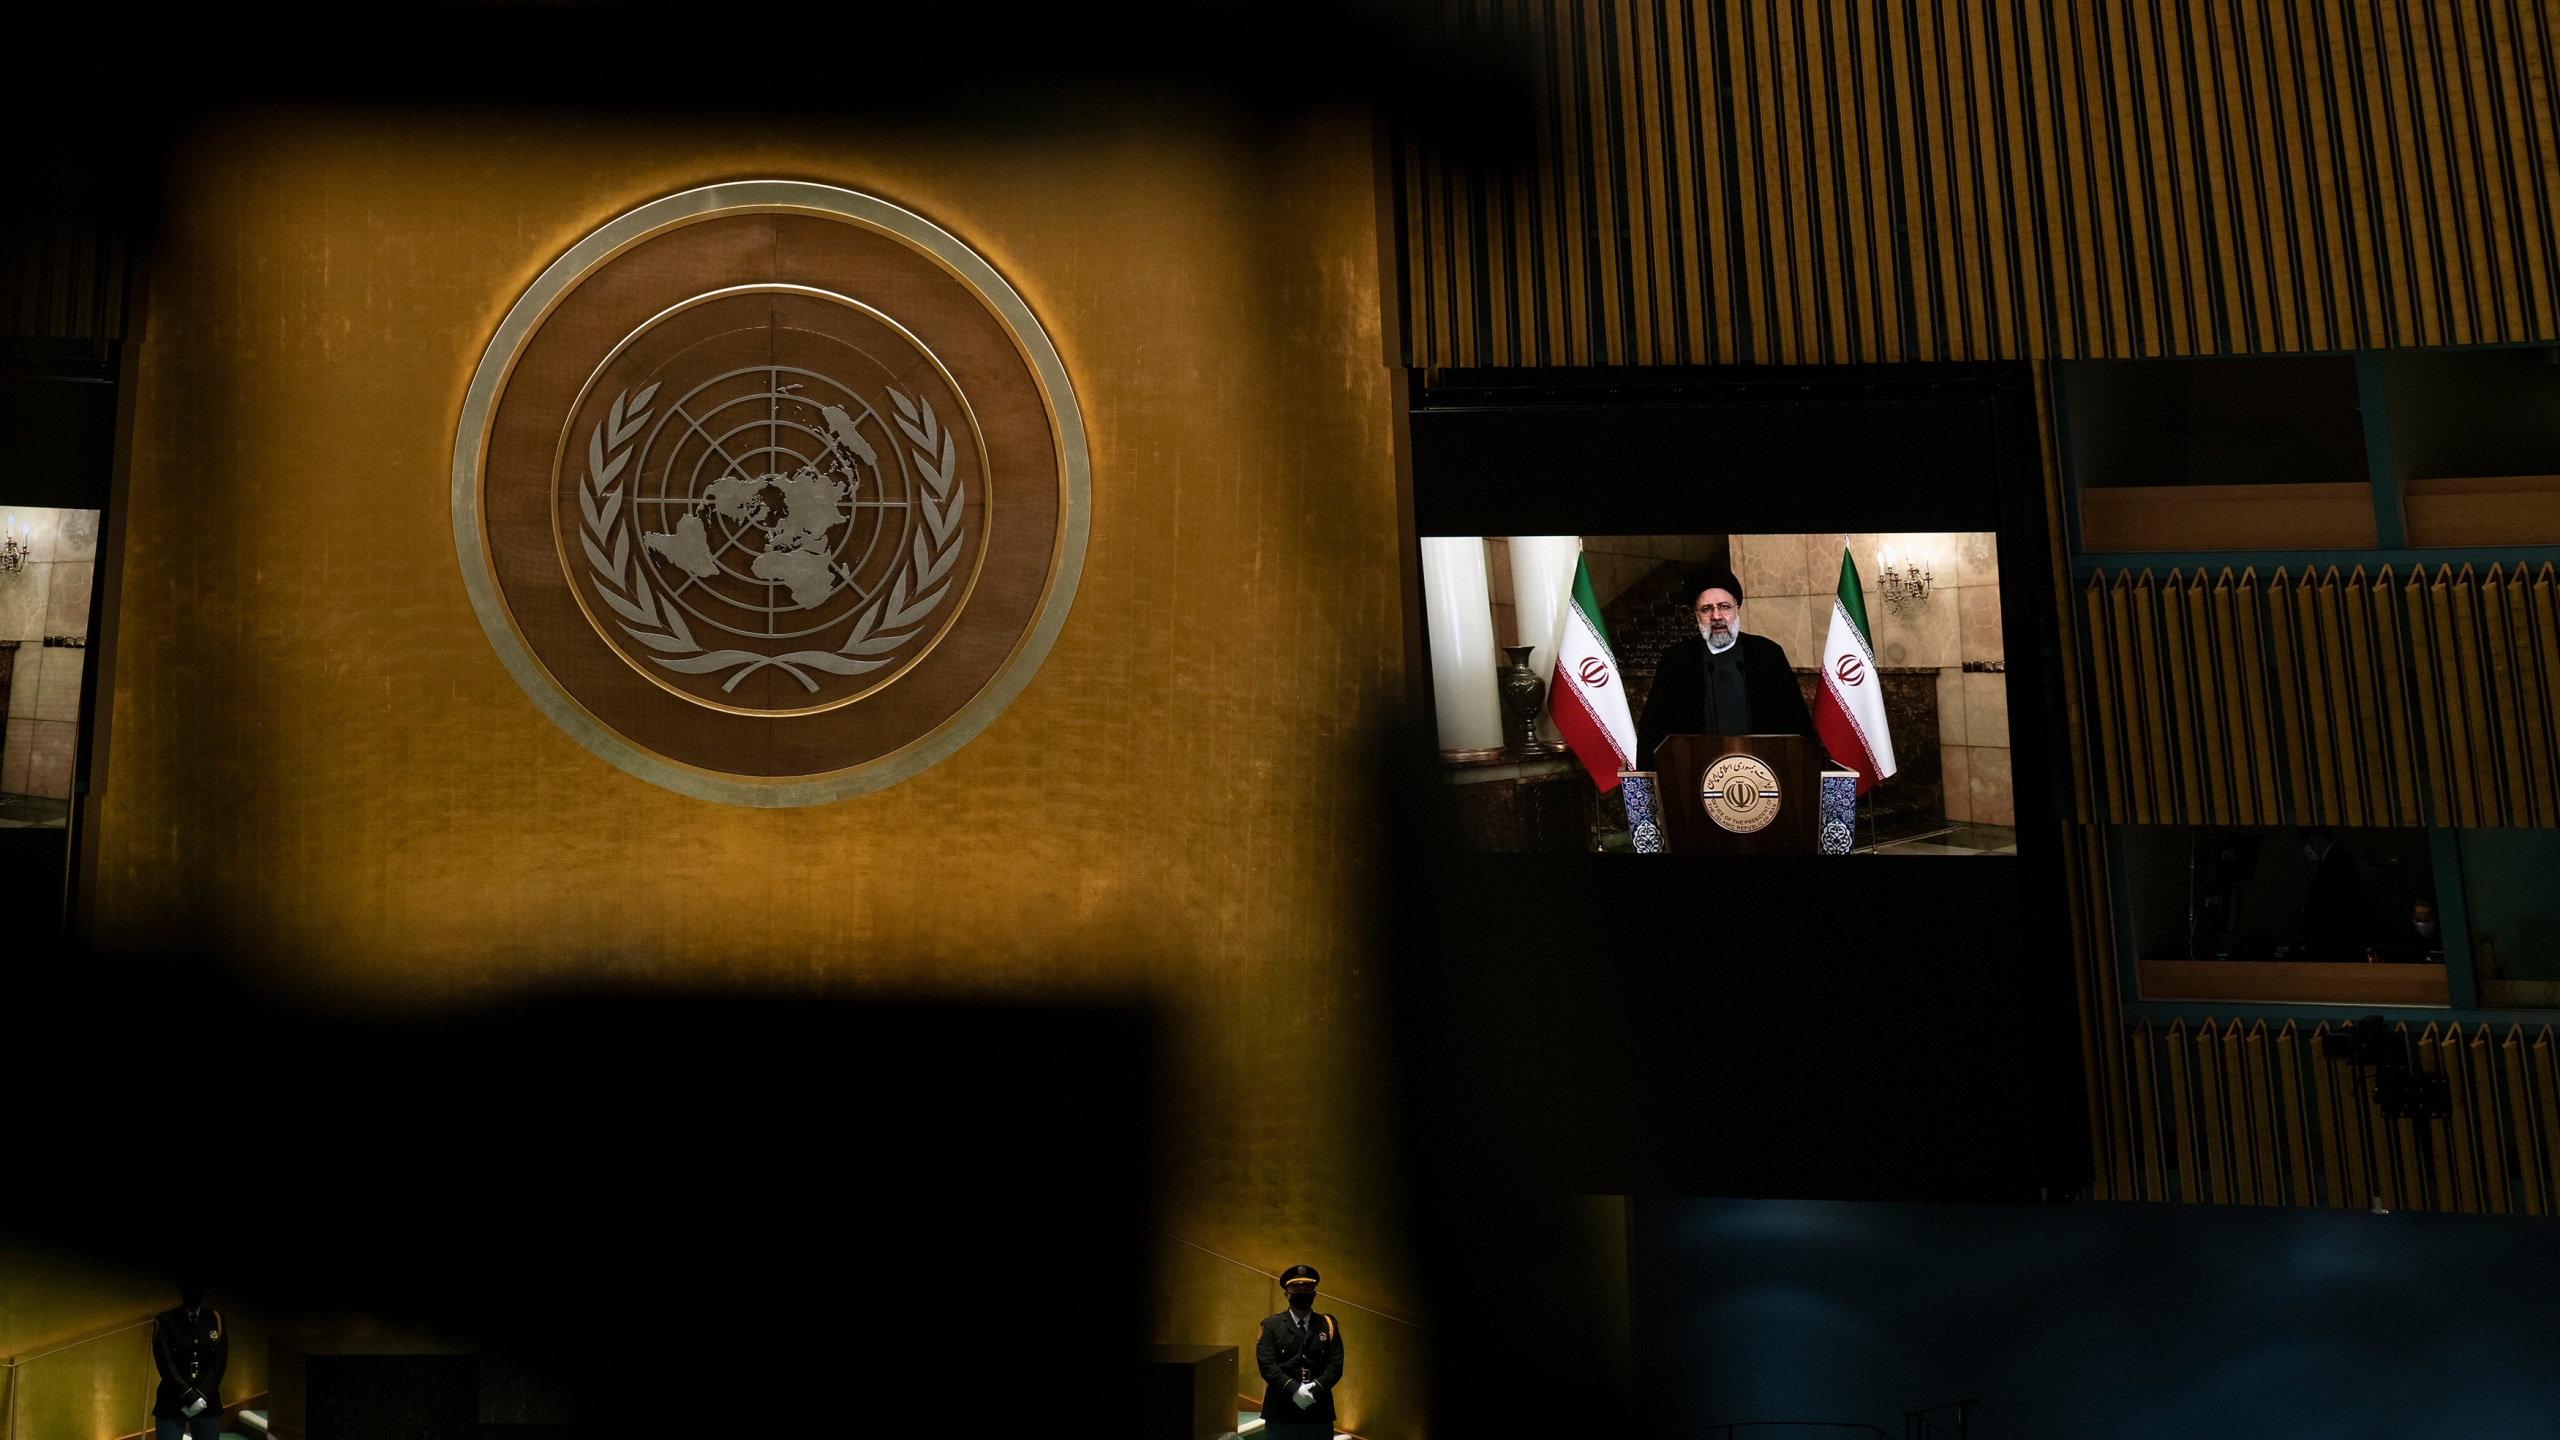 Iran's President's Ebrahim Raisi remotely addresses 76th Session of the U.N. General Assembly in New York City